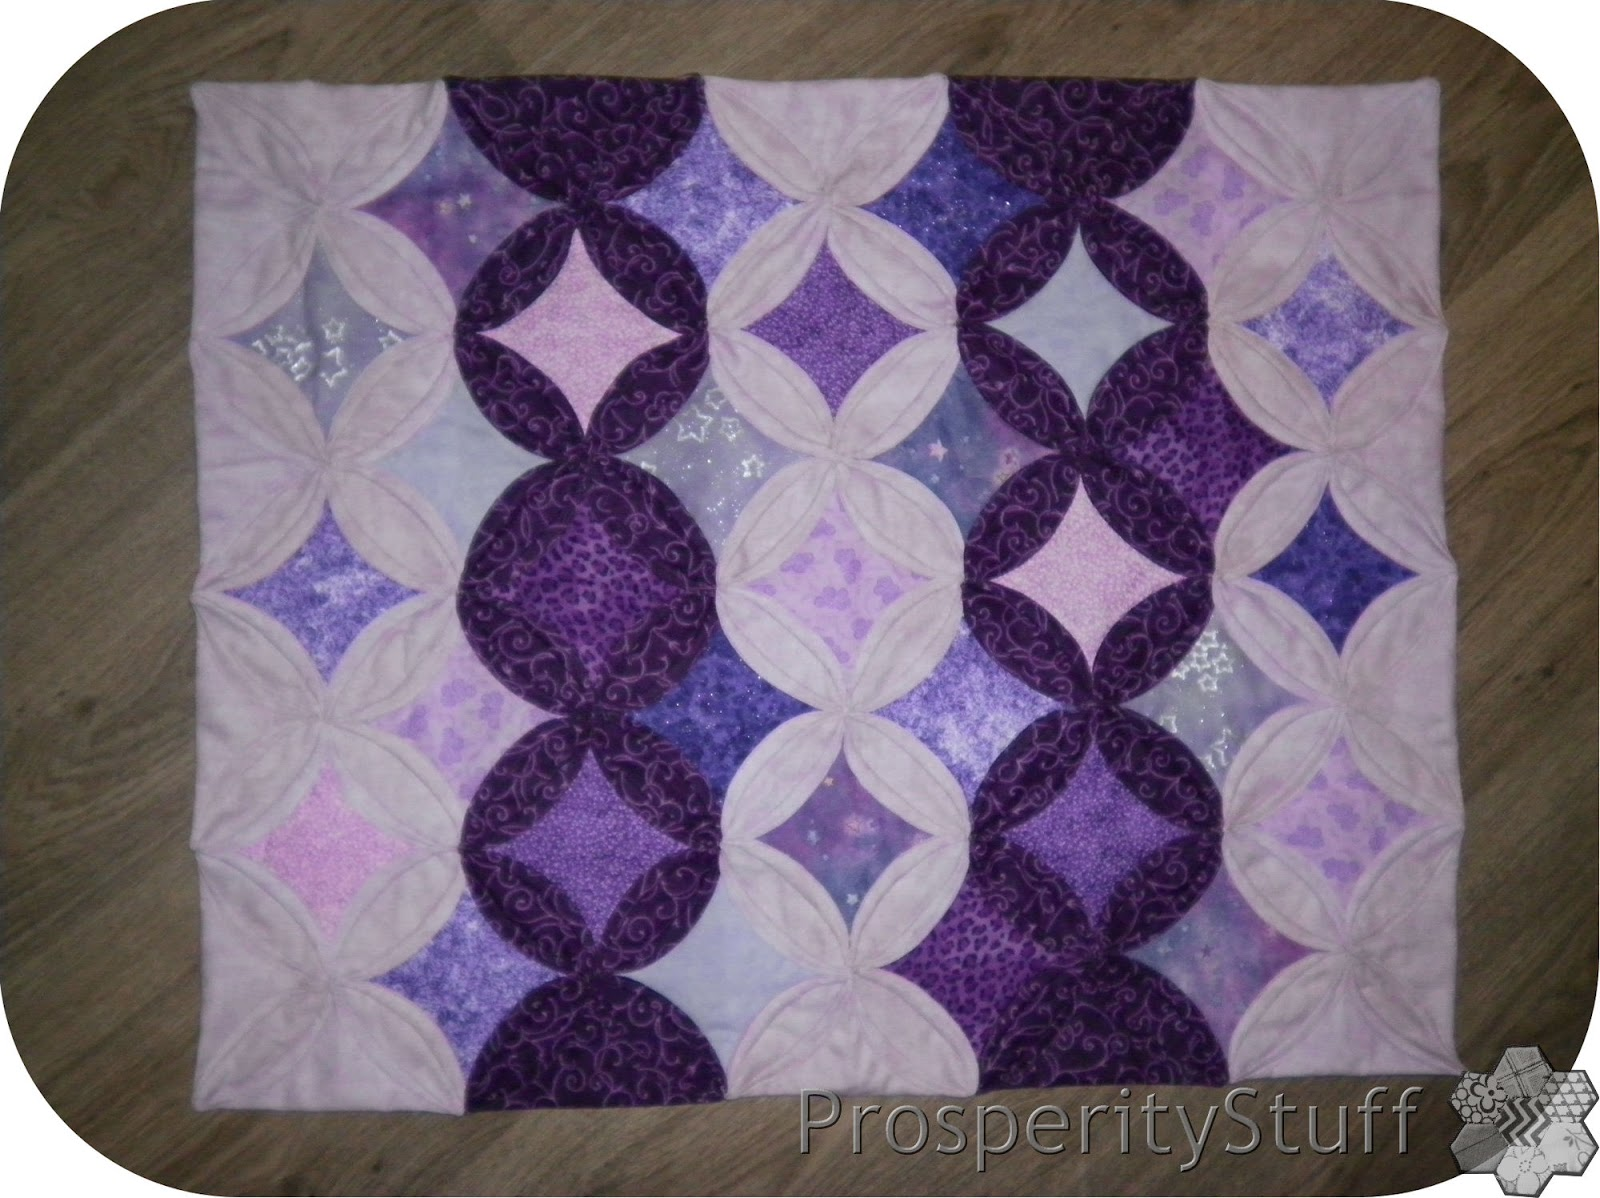 Prosperitystuff Quilts Cathedral Window Mini Quilt By